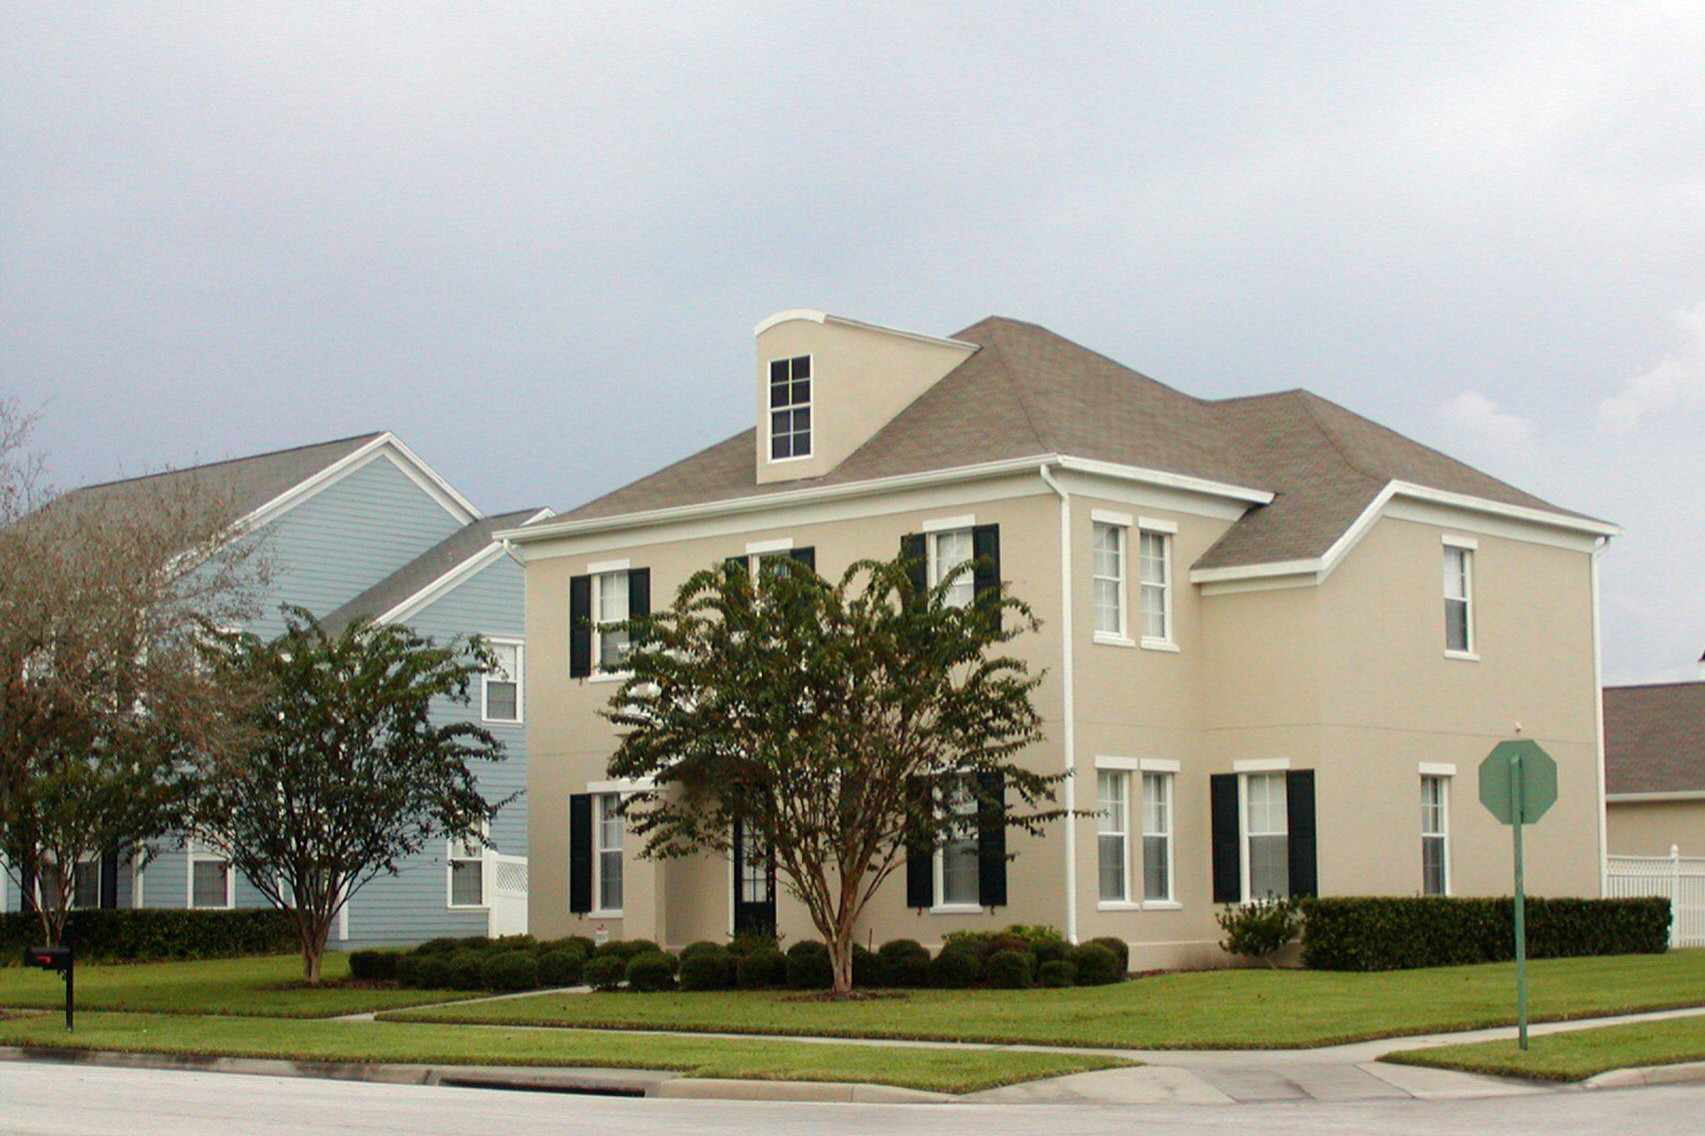 Neotraditional Home in Celebration, Fla.